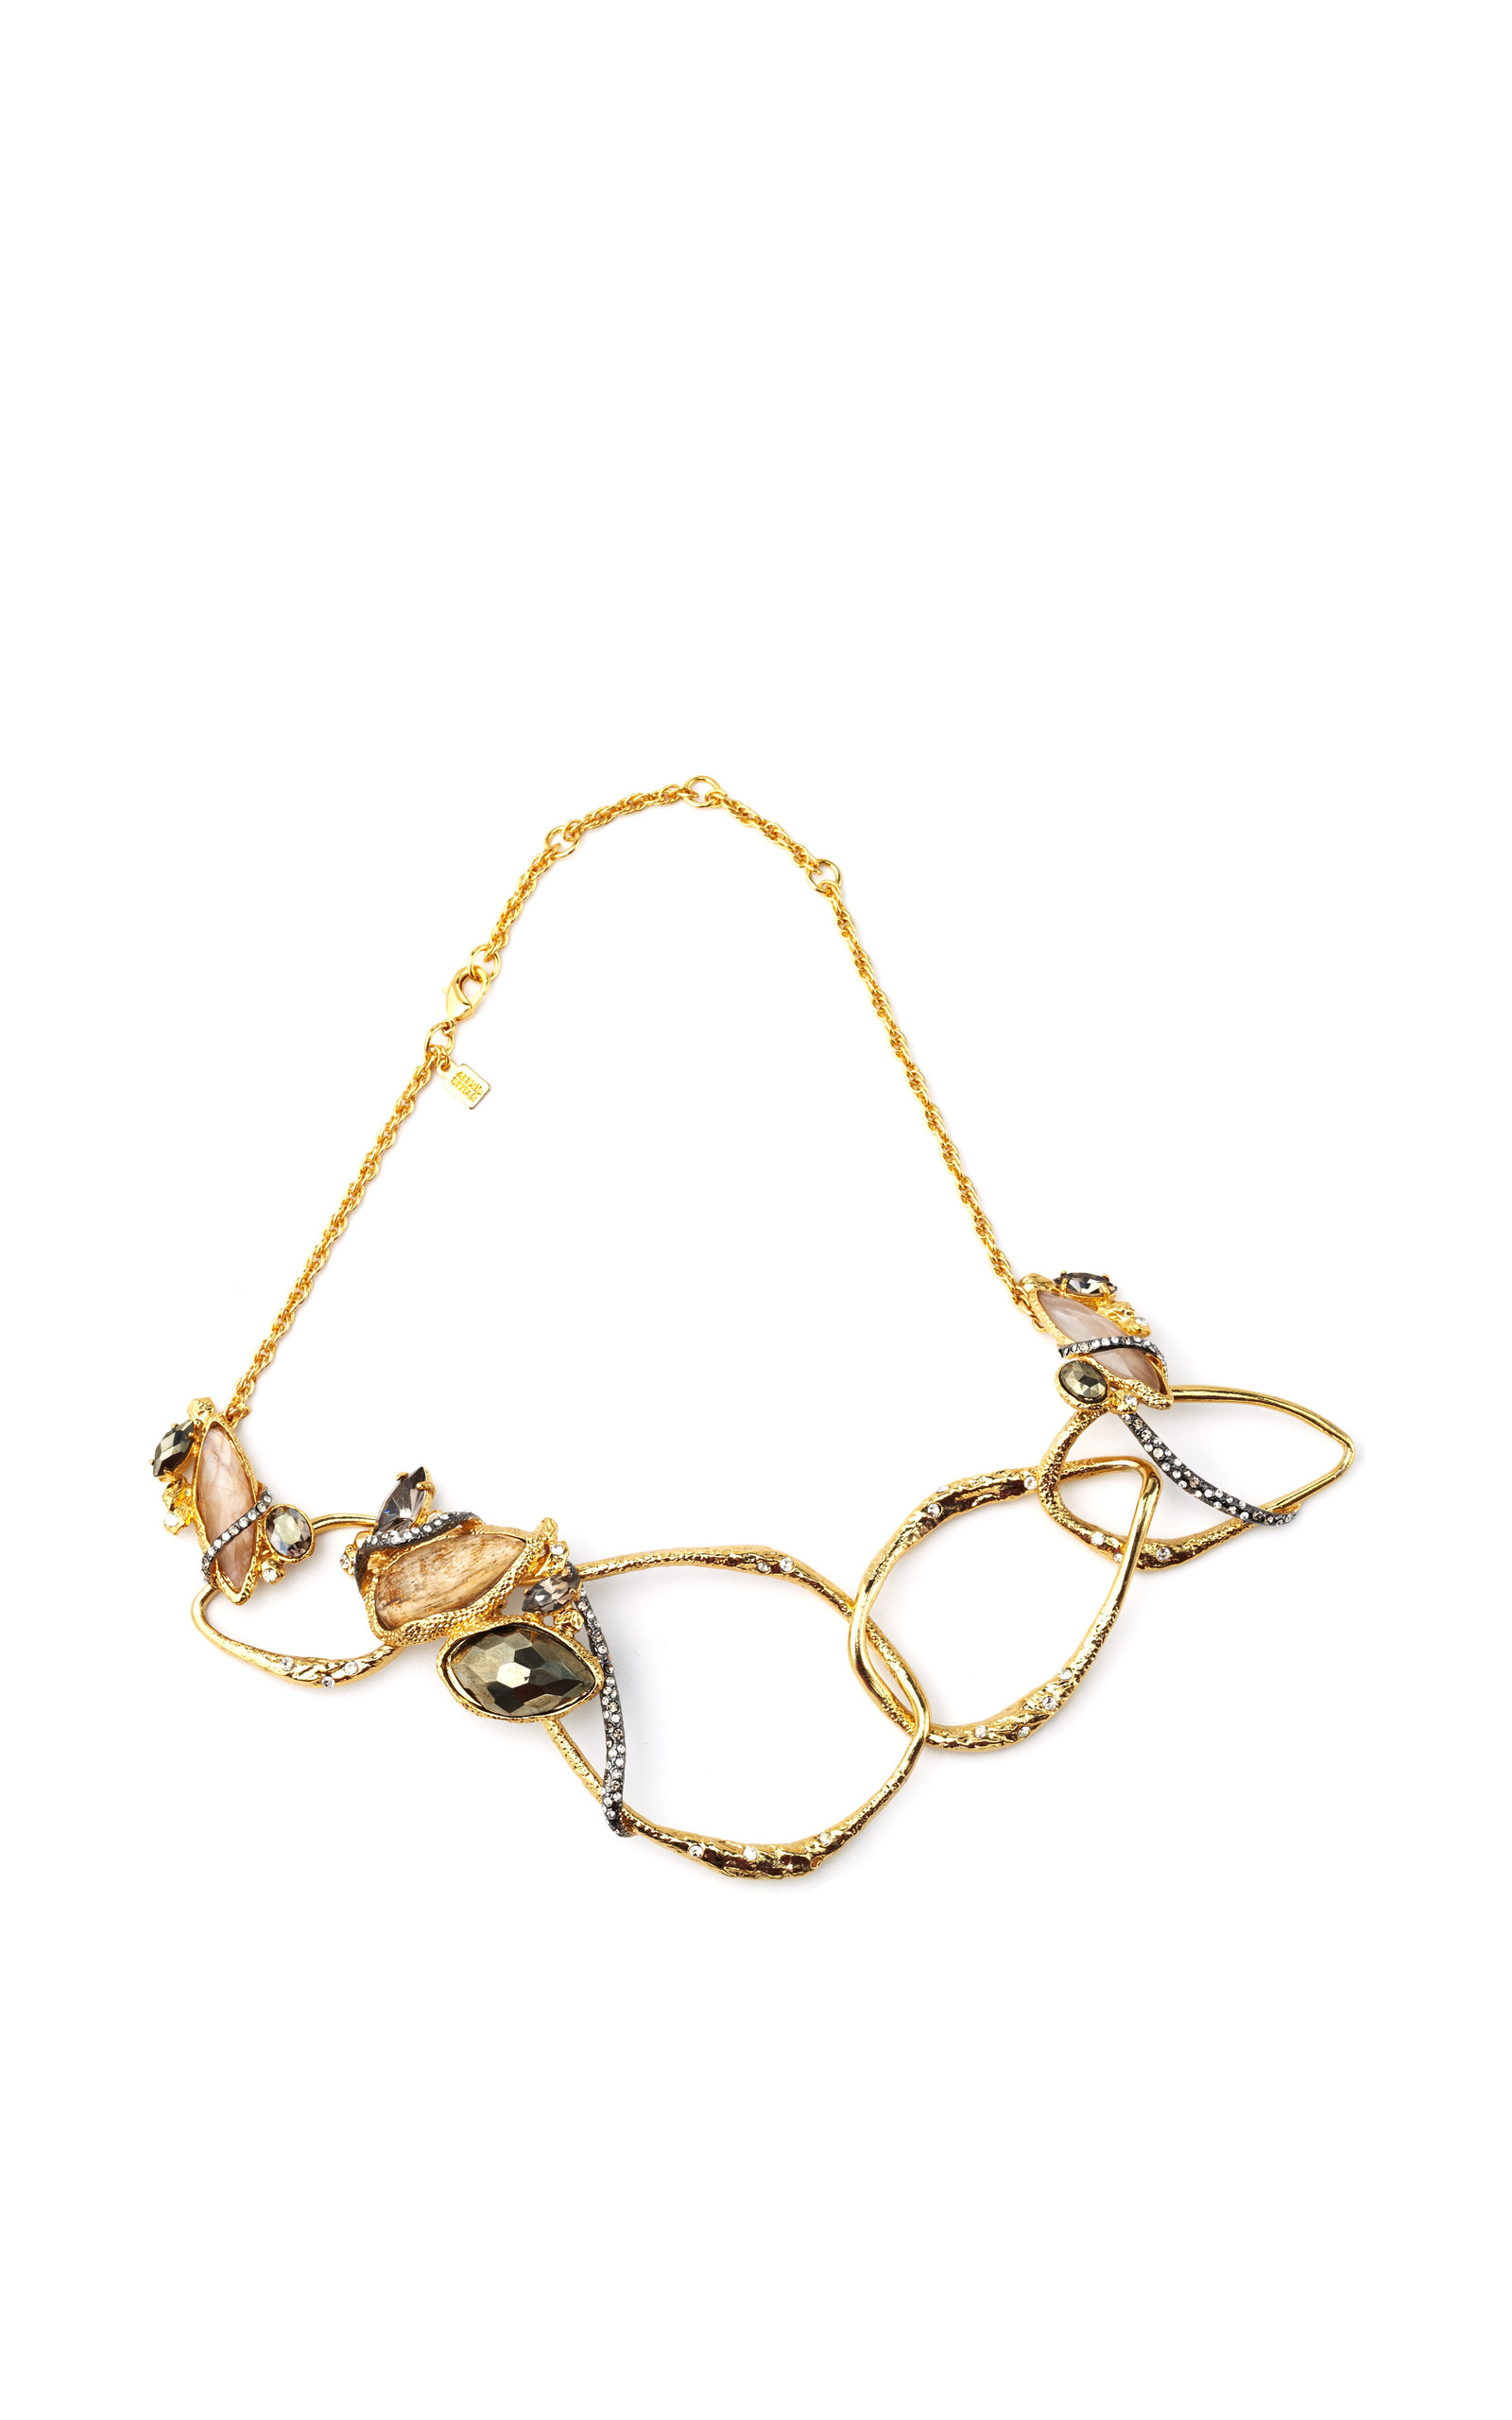 pinterest alexis pin bittar necklace jewelry